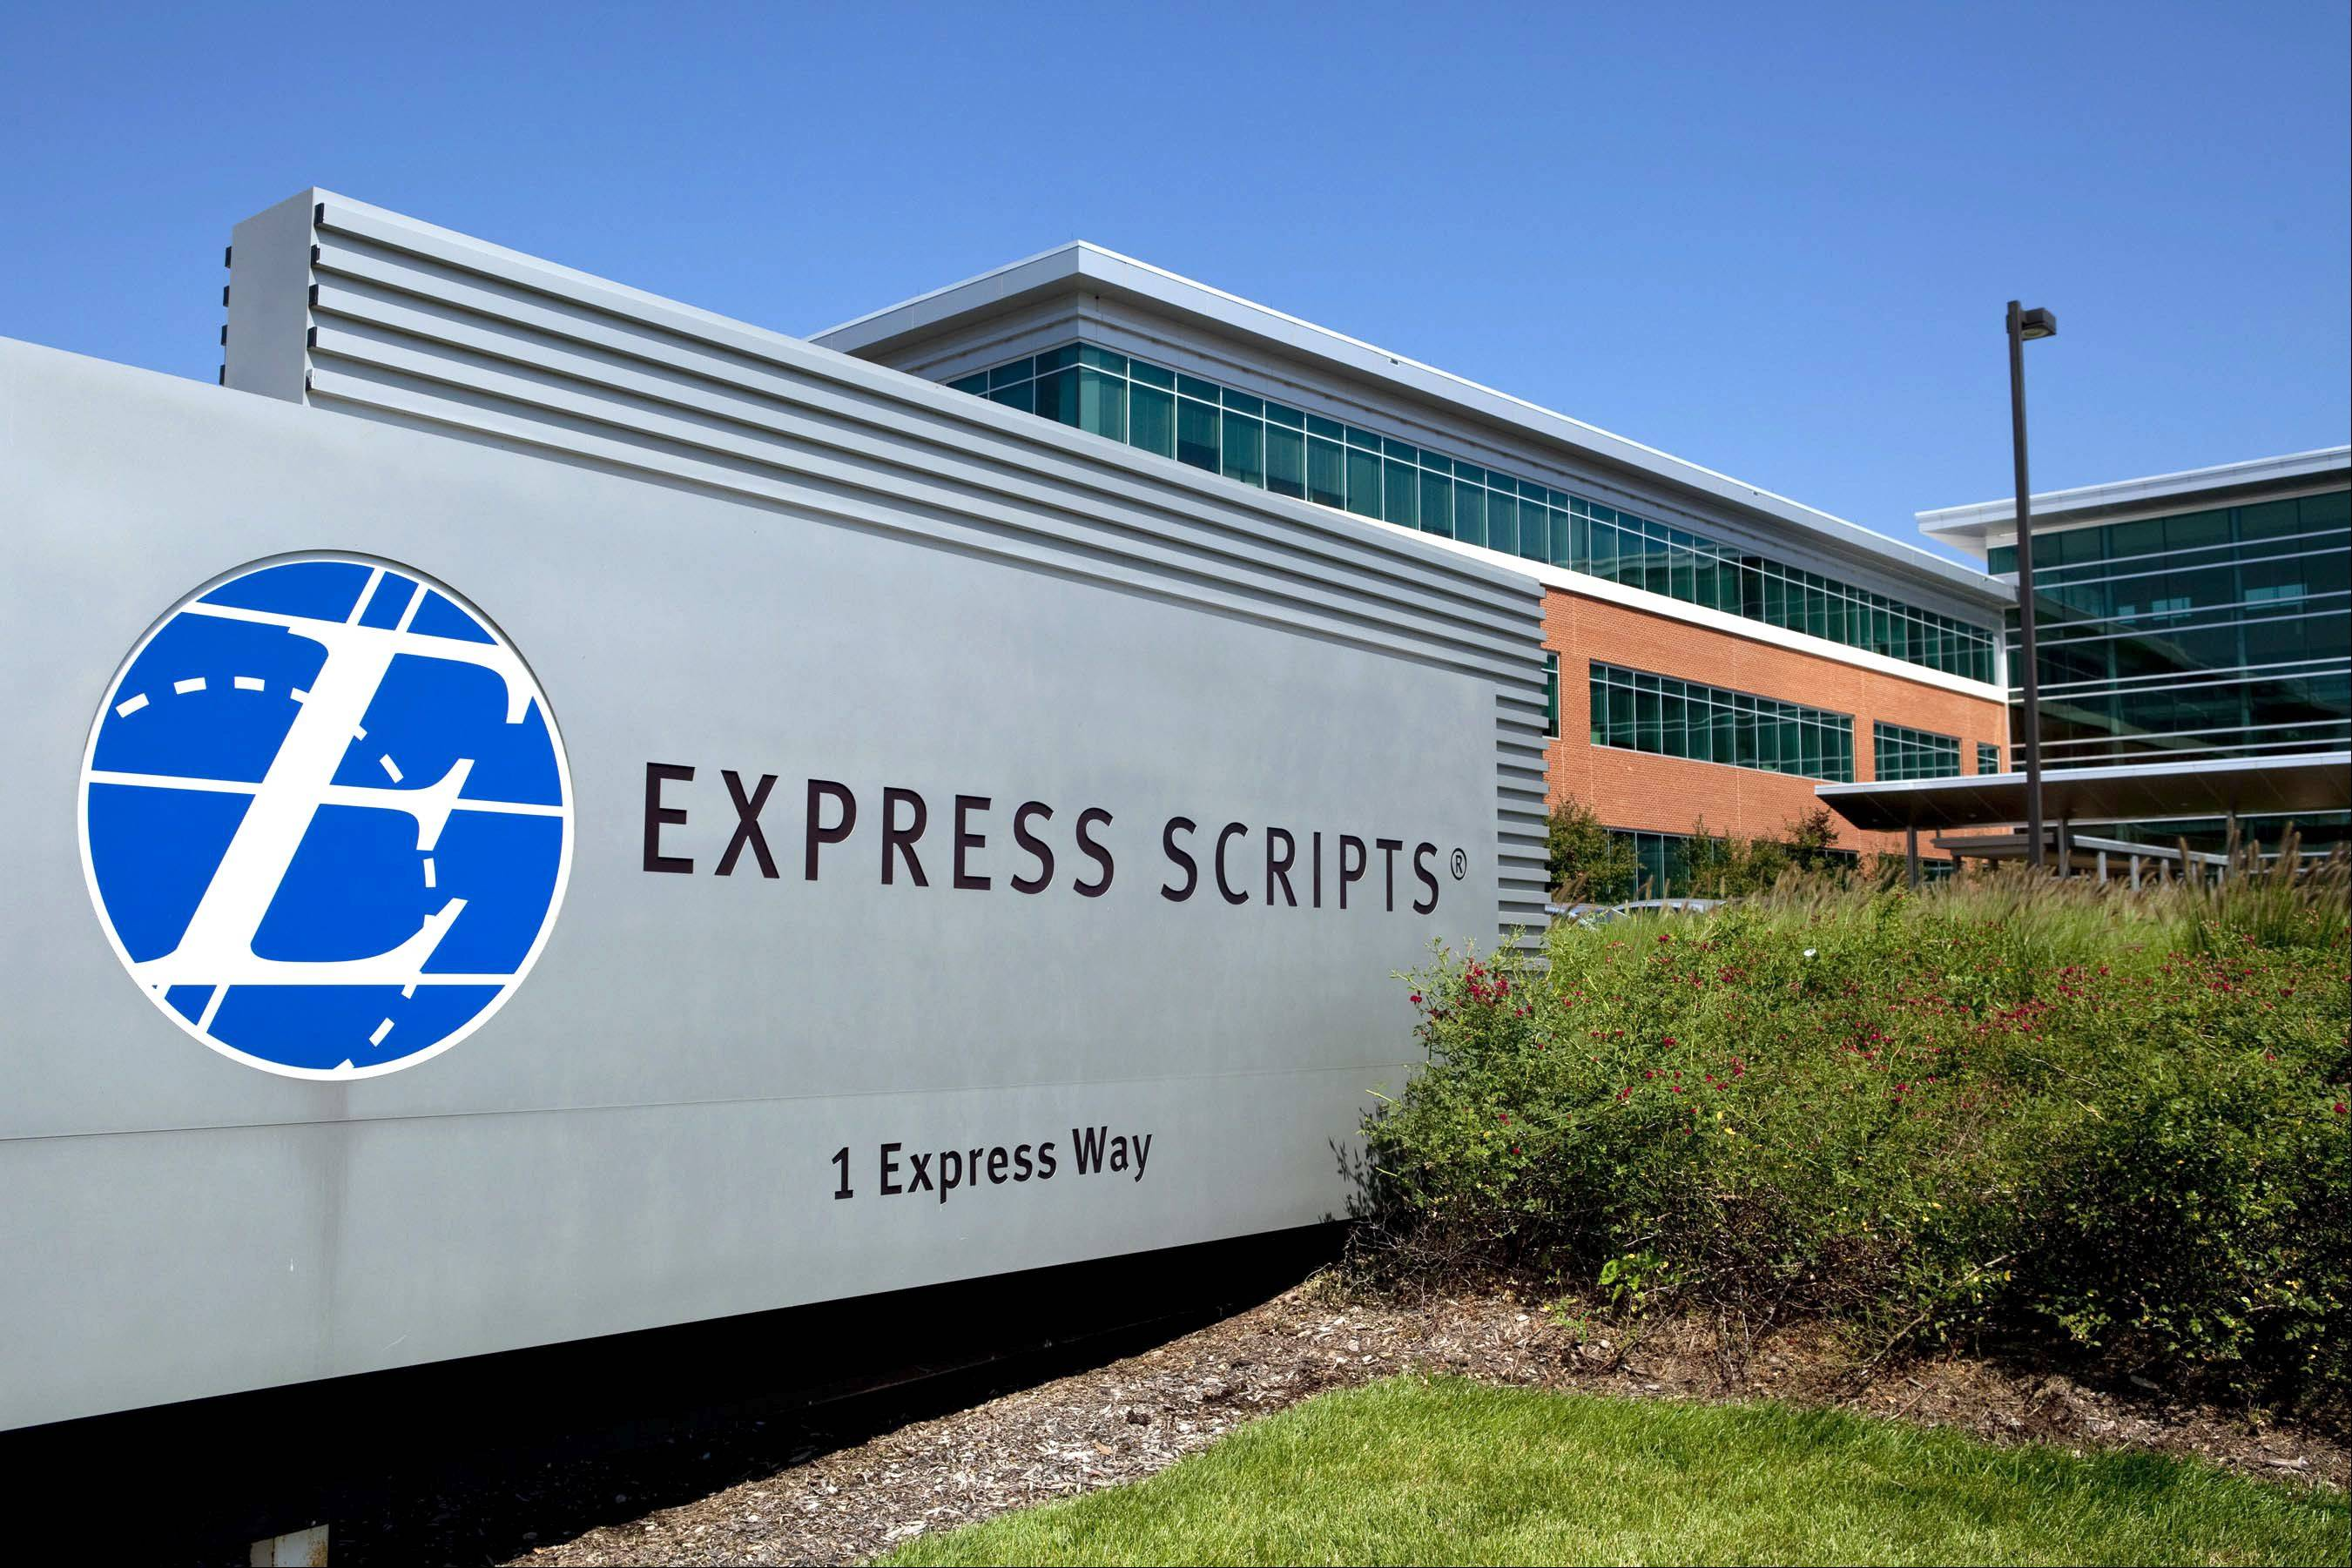 Express Scripts Inc. agreed to buy Medco Health Solutions Inc. for $29.1 billion to become the largest pharmacy-benefits manager in the U.S.